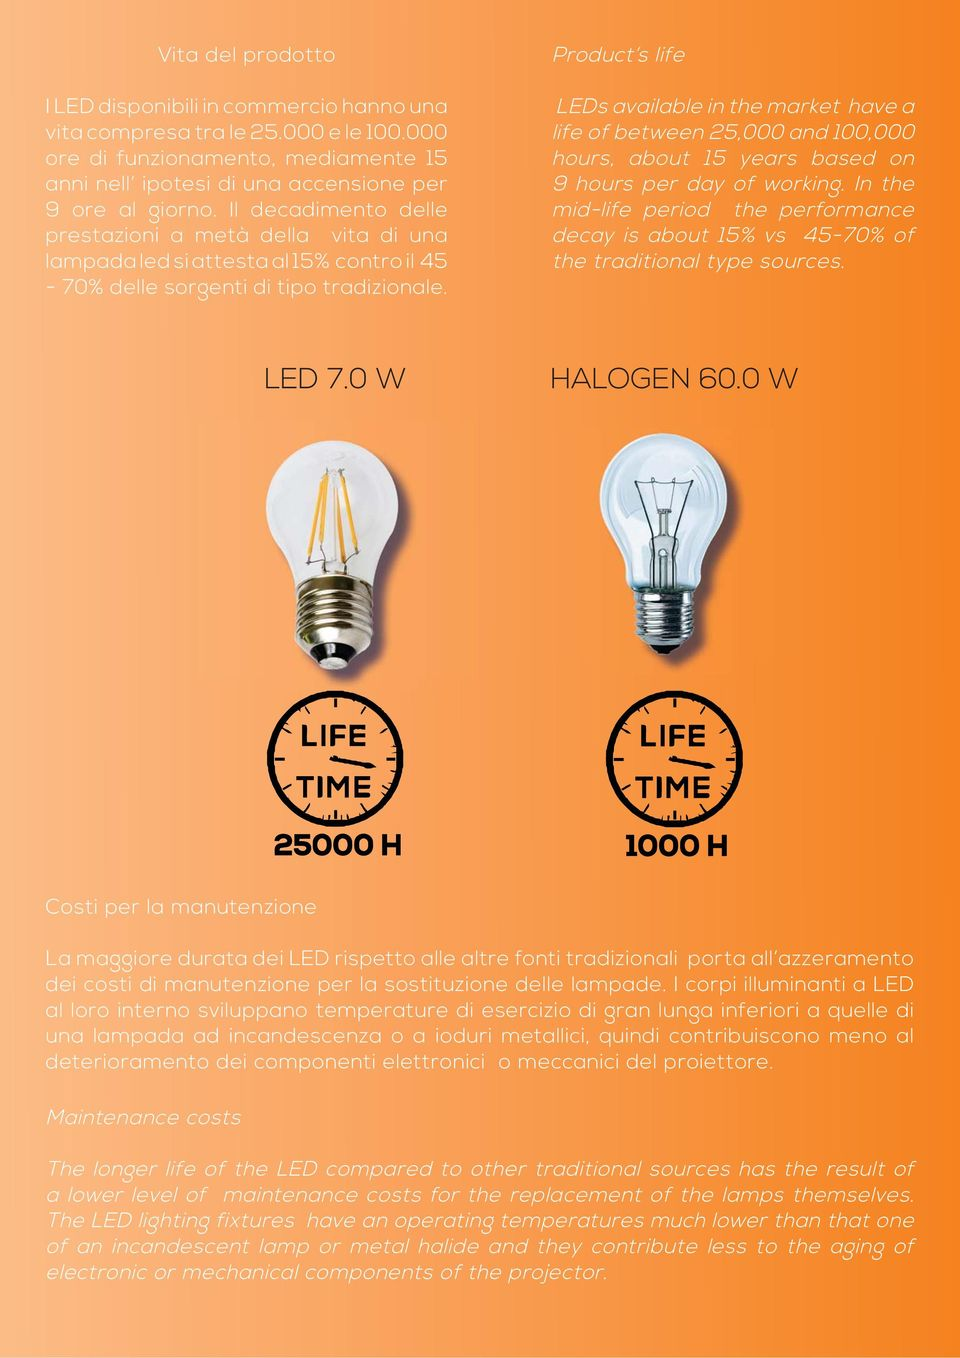 Product s life LEDs available in the market have a life of between 25,000 and 100,000 hours, about 15 years based on 9 hours per day of working.